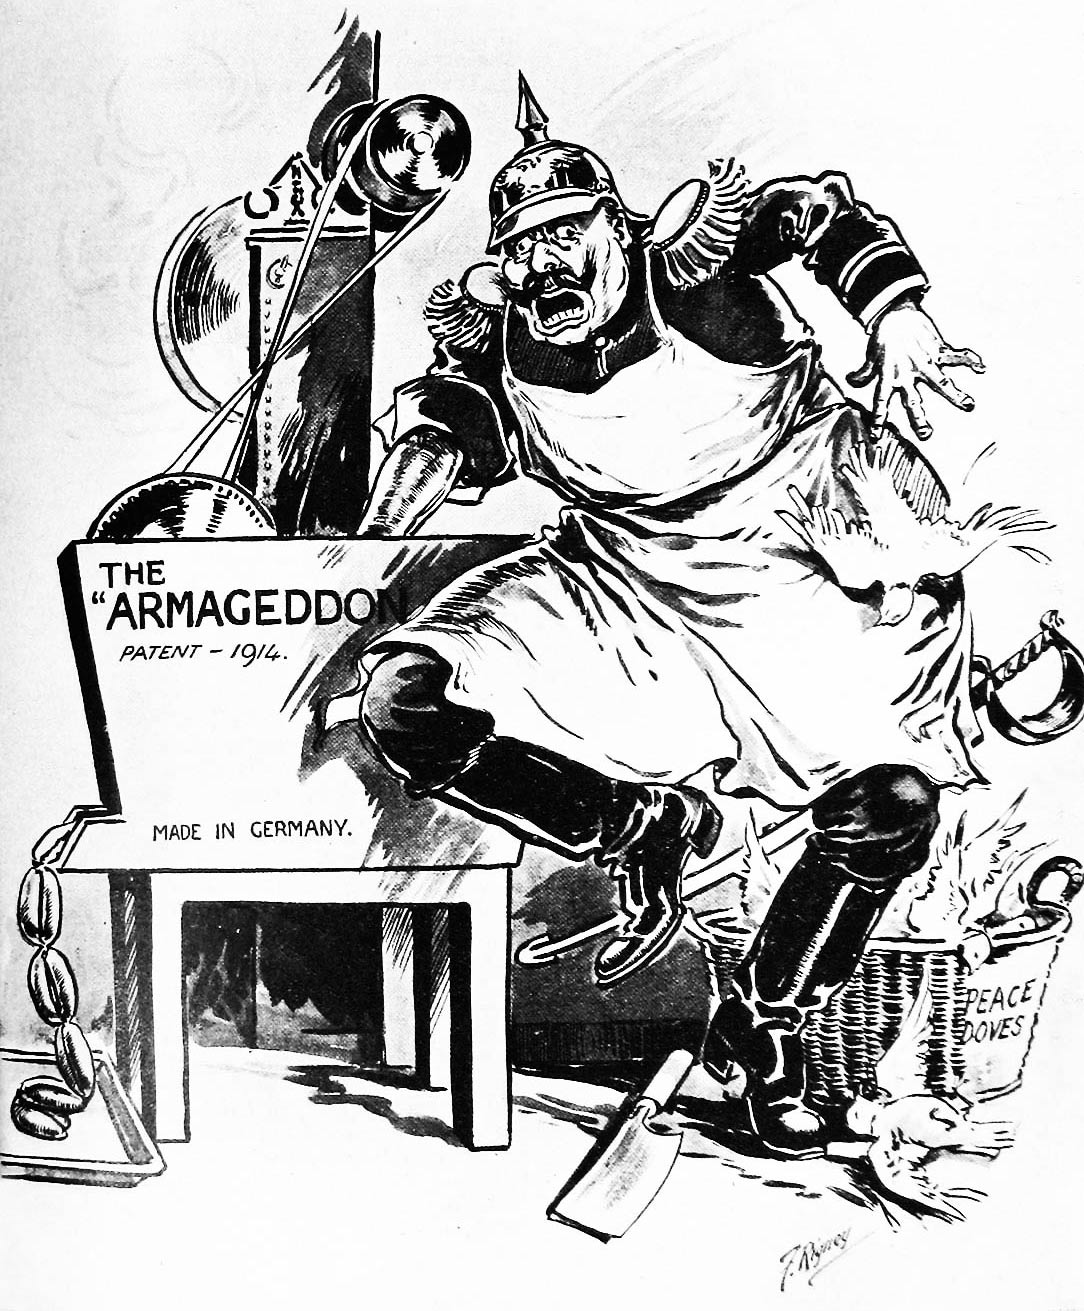 This cartoon from Irish Life showing derision for the Kaiser's proposals. It depicts the war as an 'Armageddon' machine of his own design in which he is being dragged.